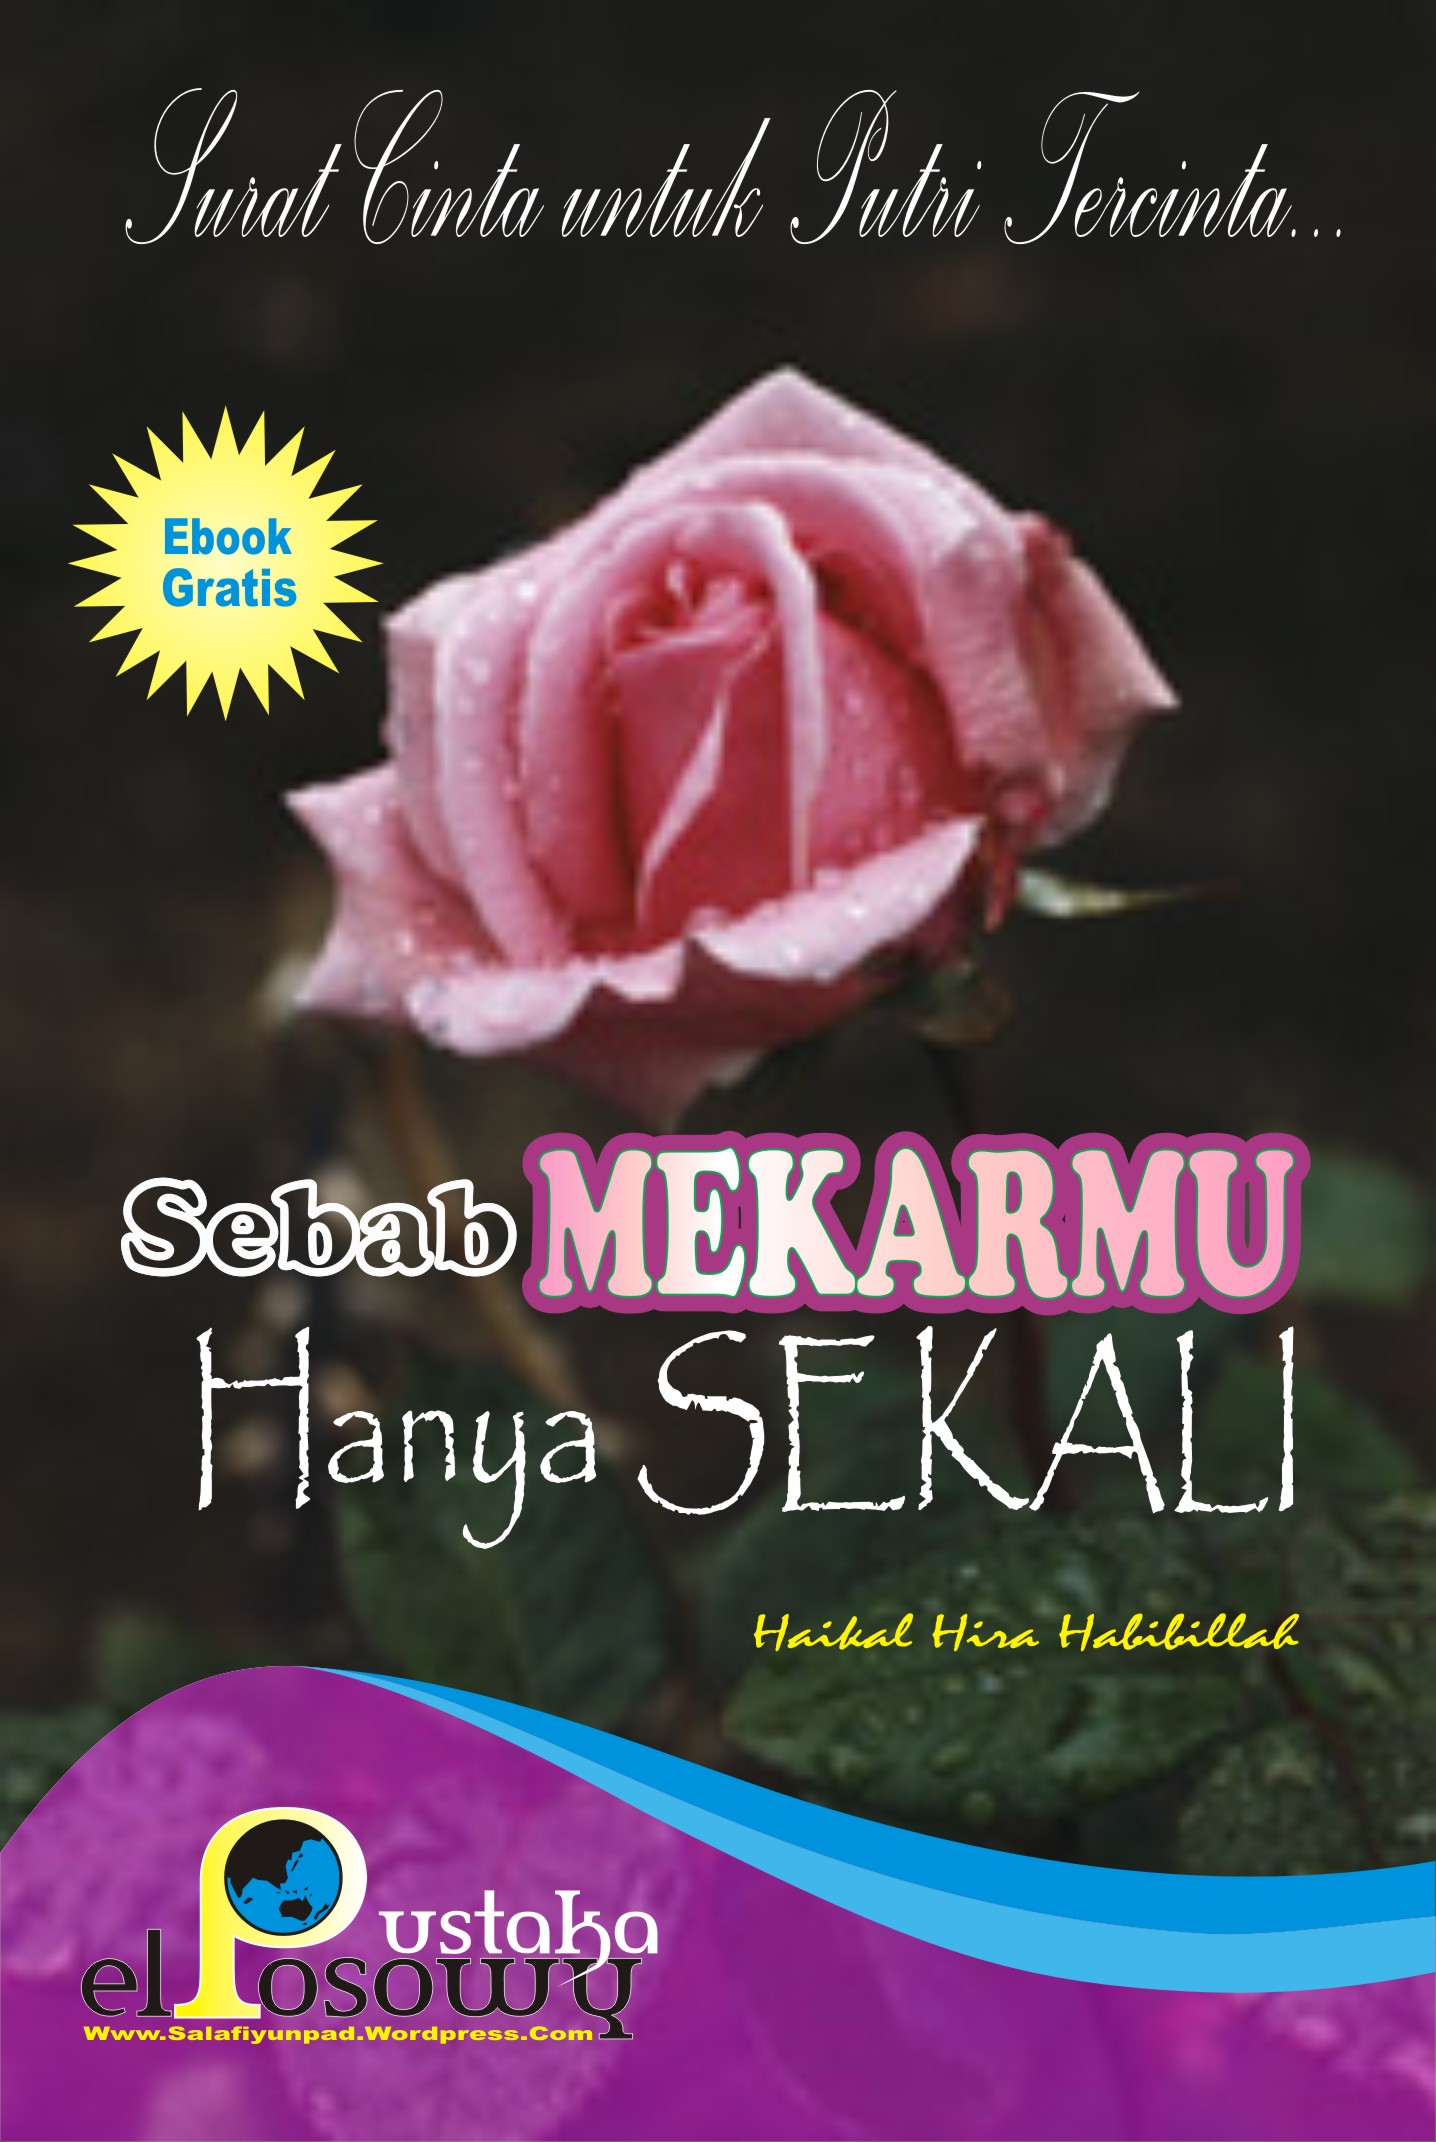 https://salafiyunpad.files.wordpress.com/2008/11/sebab-mekarmu-hanya-sekali-cover.jpg